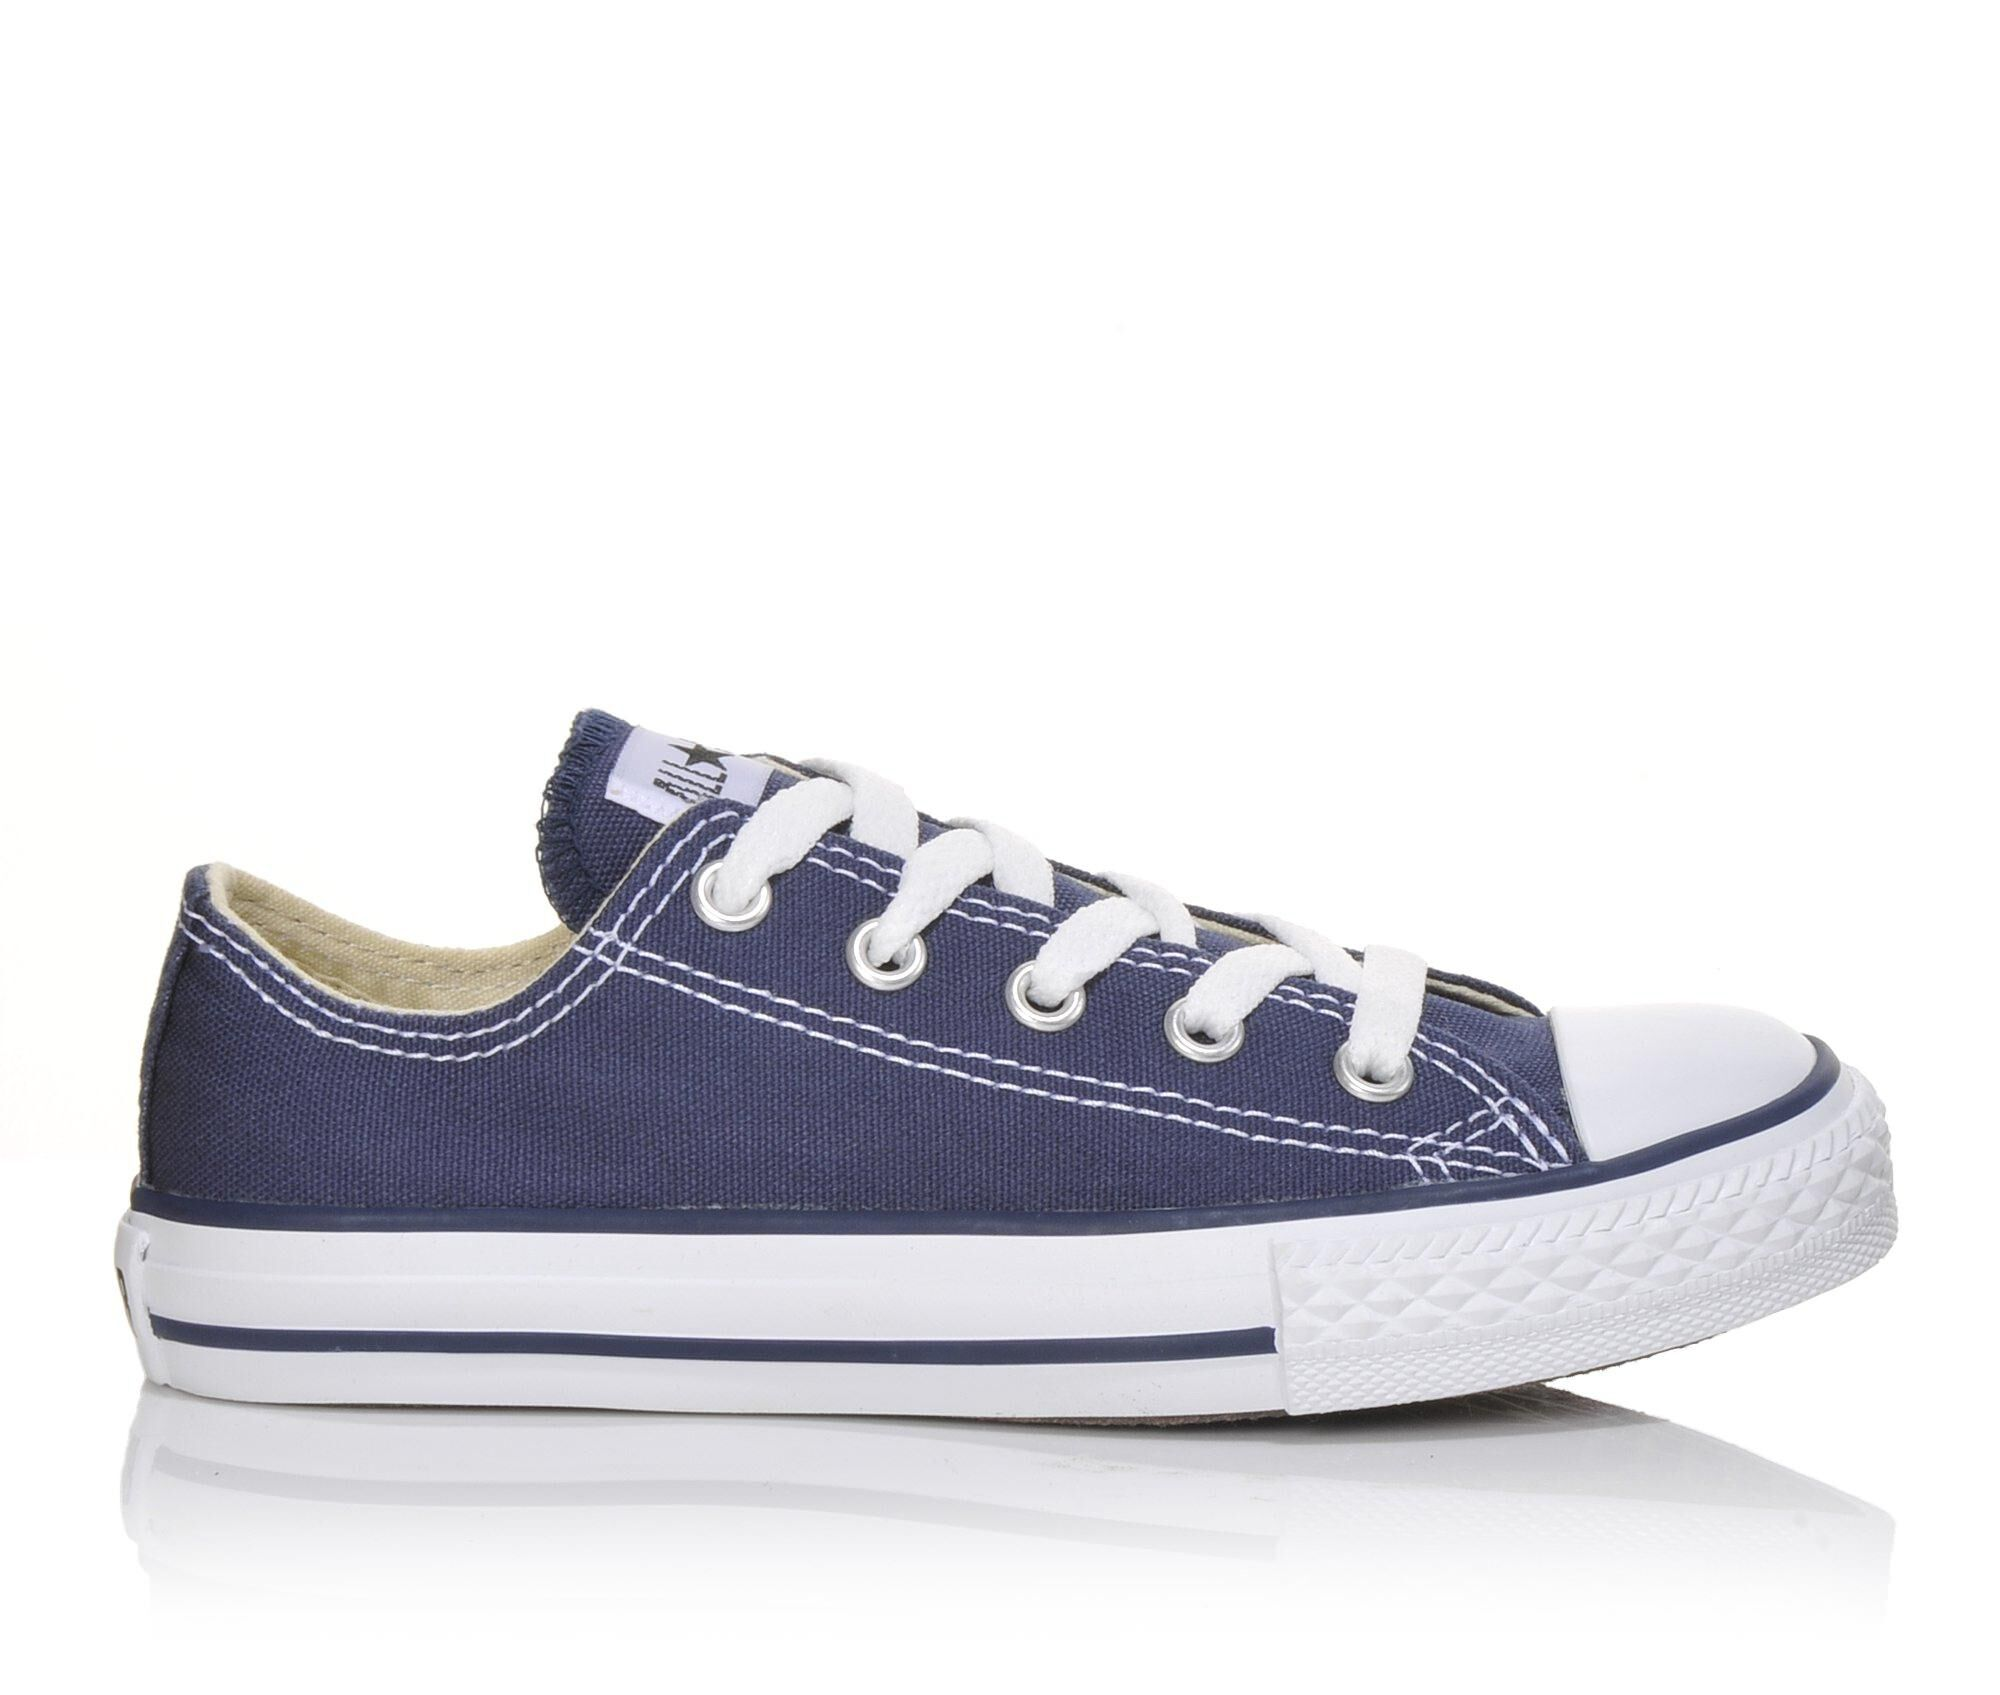 CONVERSE unisex-child ALL STAR OX Blue / Dark Low top trainers